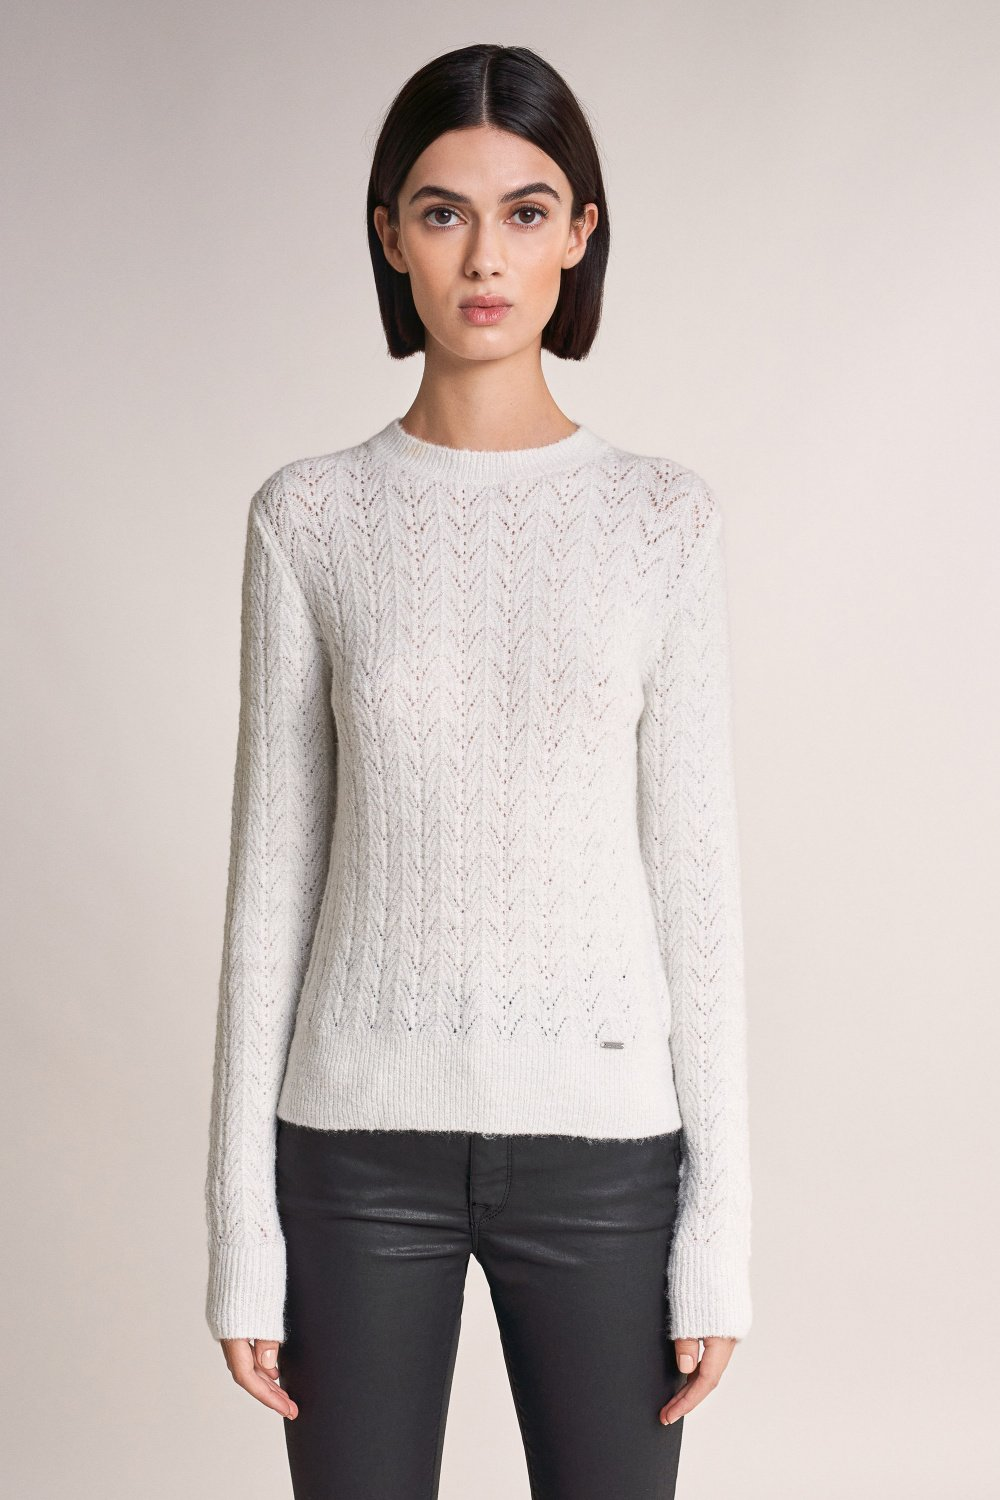 Thick knitted sweater with sparkles - Salsa